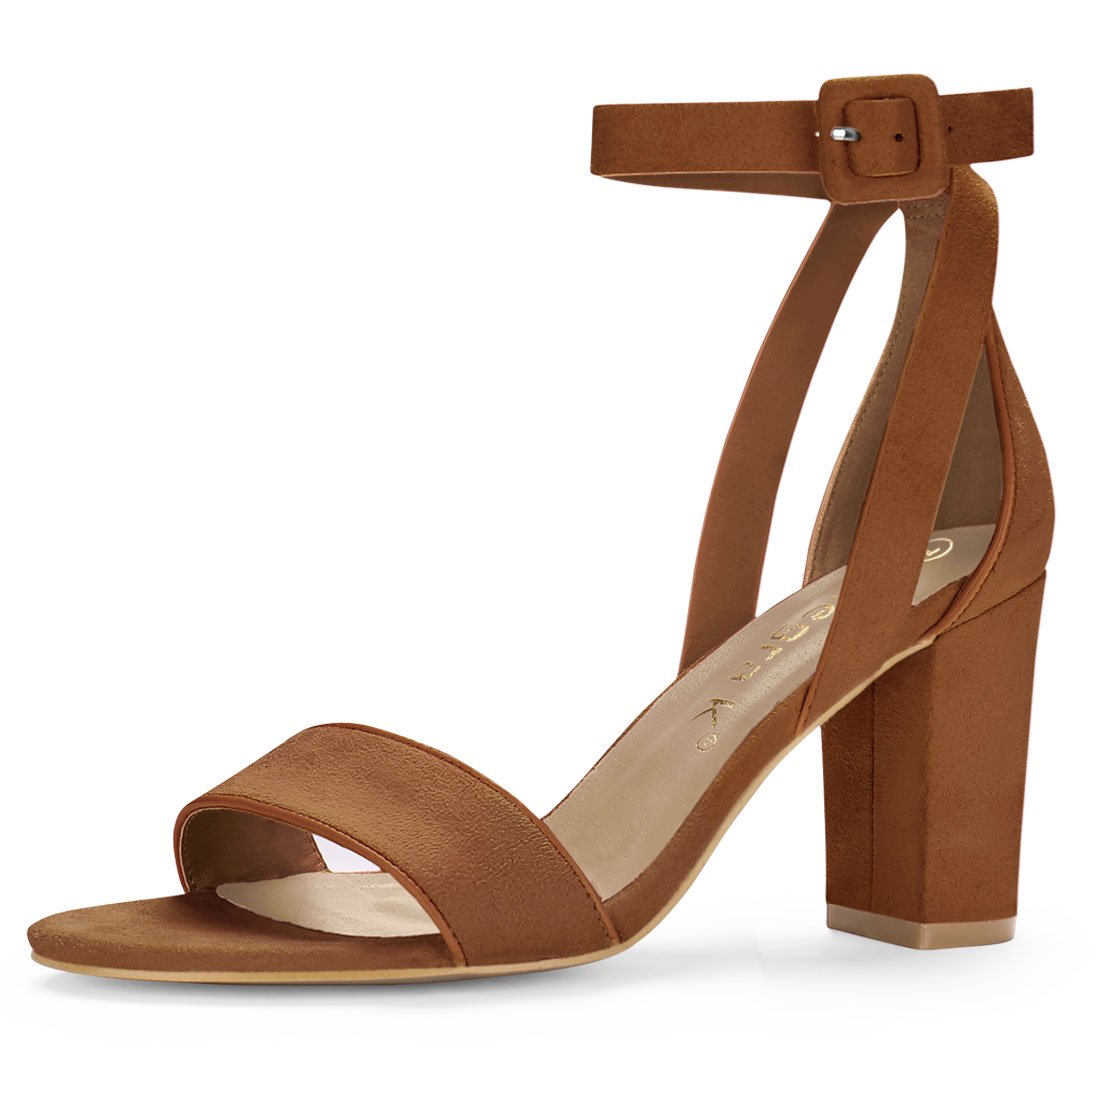 8f260525079 HJ284-5 Women PU Panel Piped Chunky Heel Ankle Strap Sandals Brown US 9